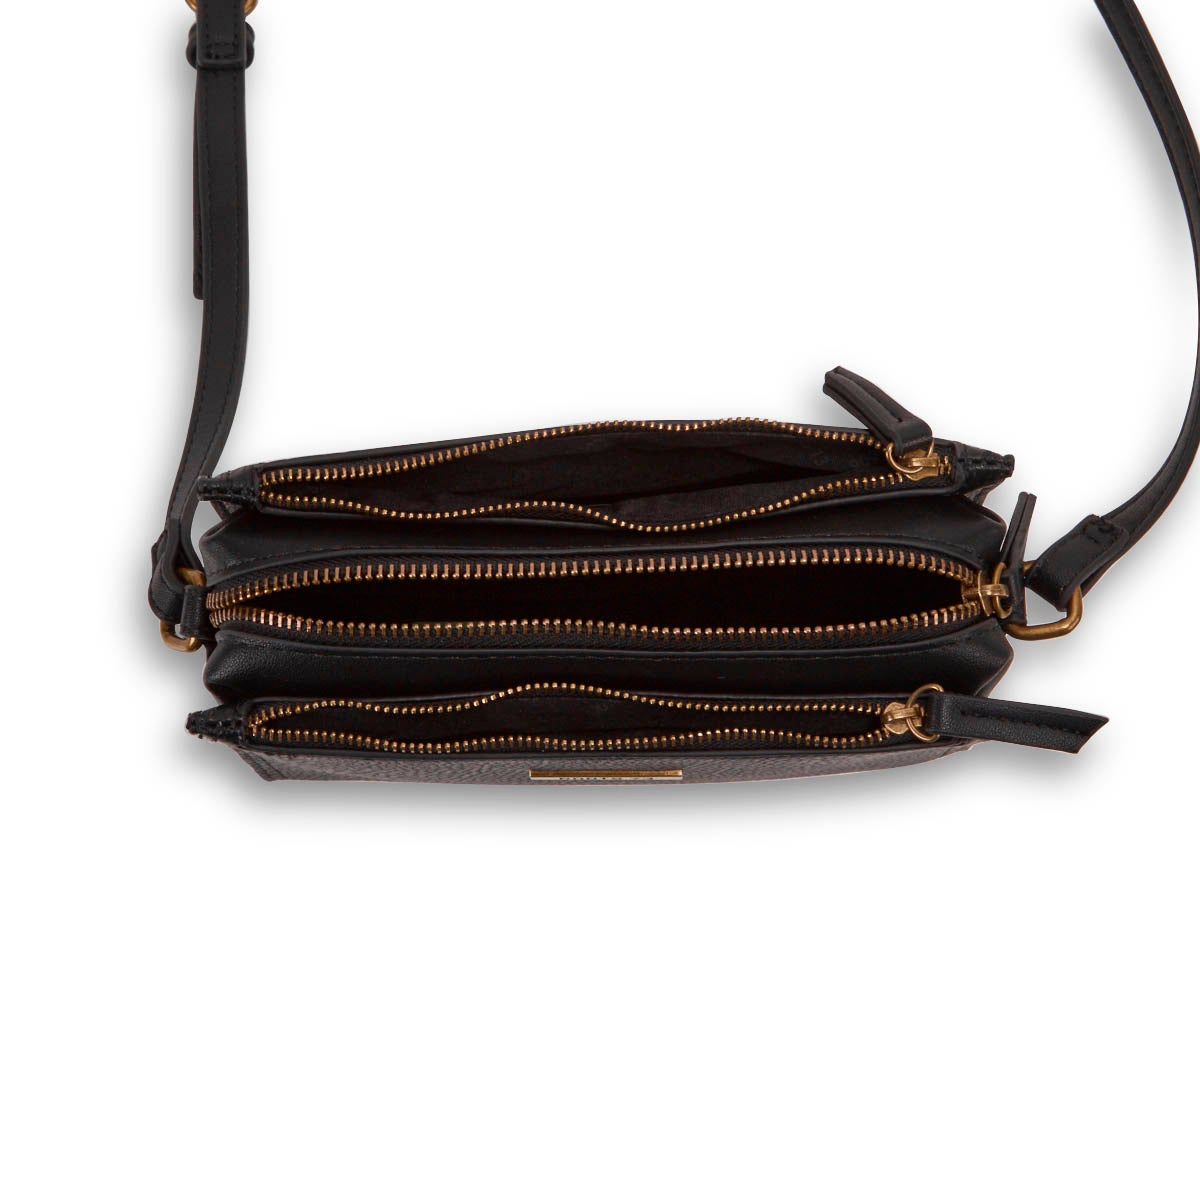 Lds Roots73 blk 3 compartment crossbody